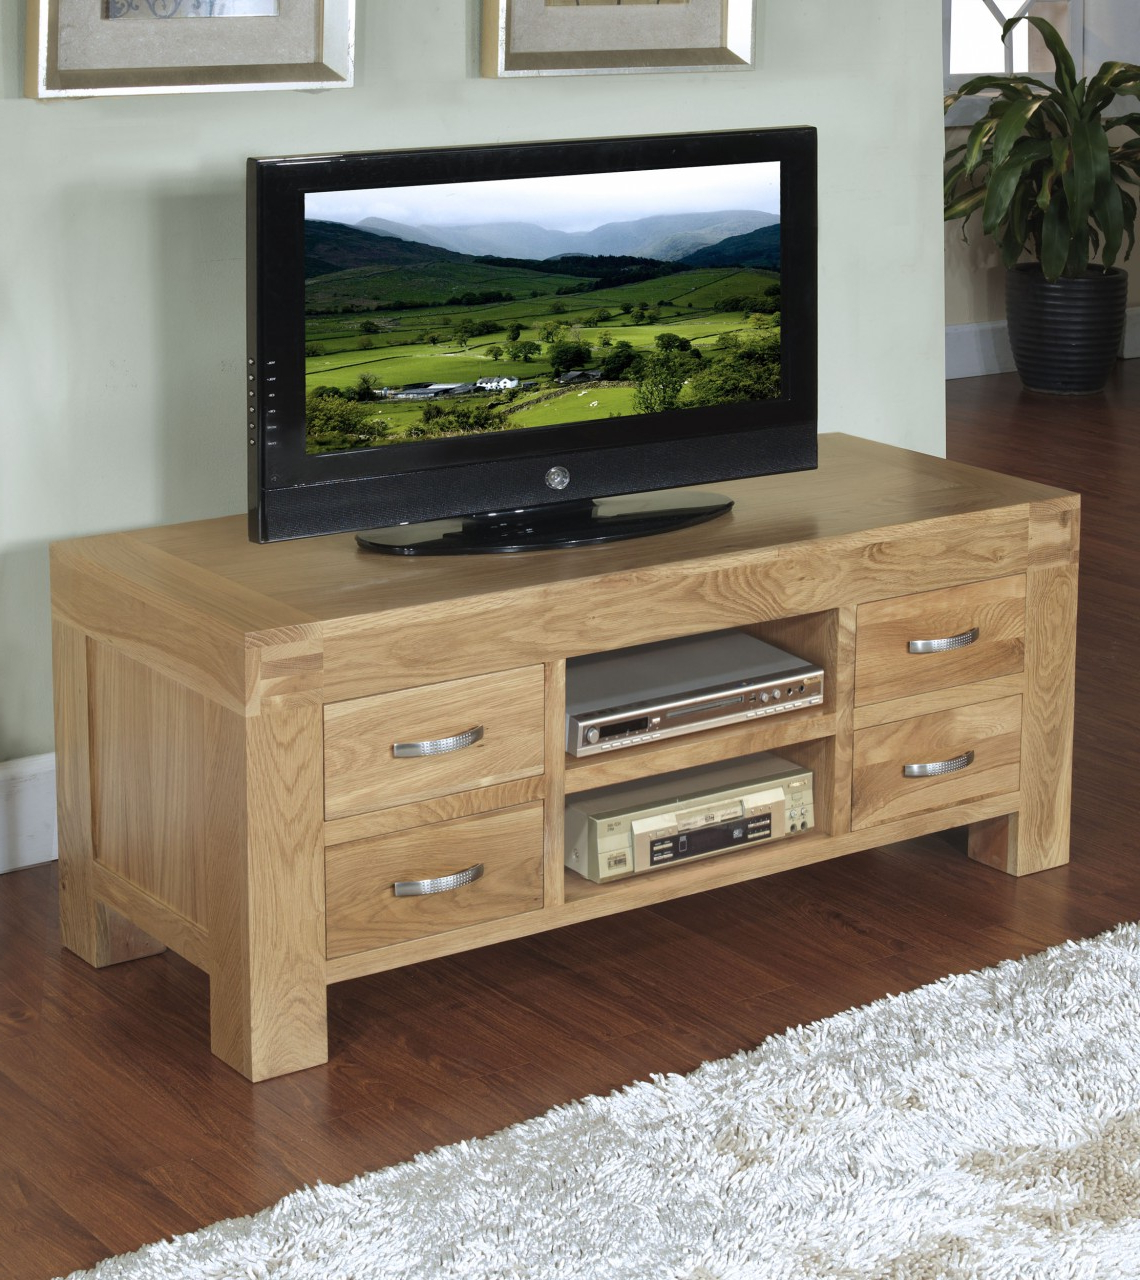 Most Recent Rustic Furniture Tv Stands Regarding Simple Tv Stand Plans Rustic Wood Entertainment Center How To Build (View 6 of 20)